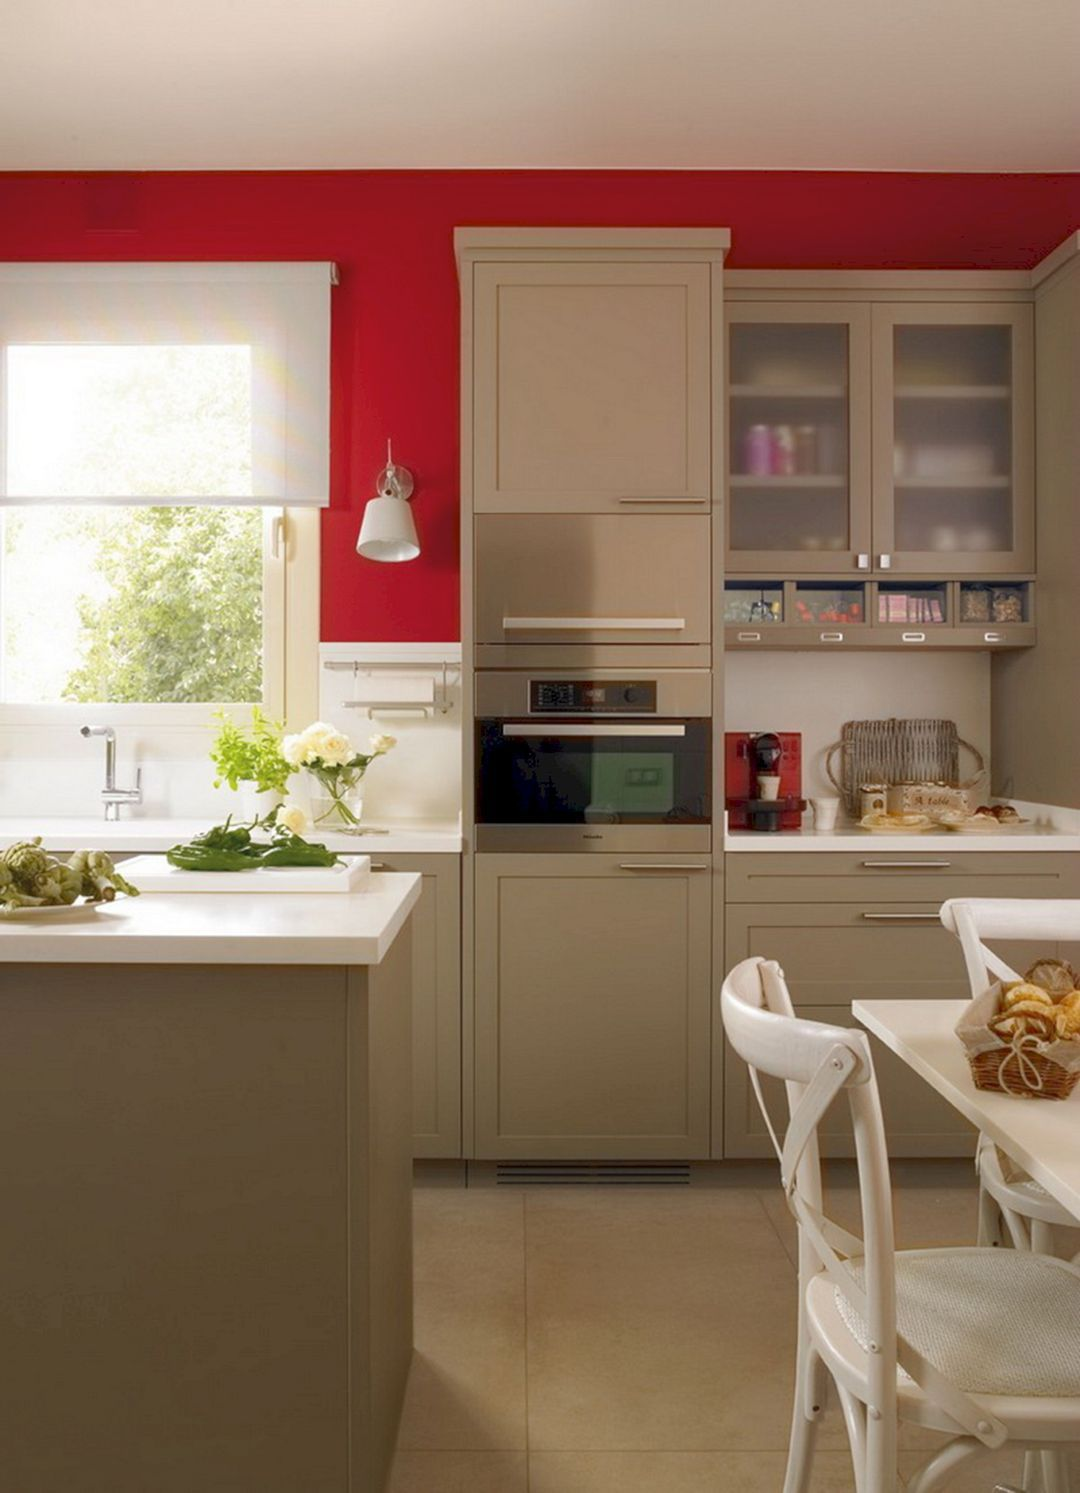 Most popular red kitchen wall decoration ideas